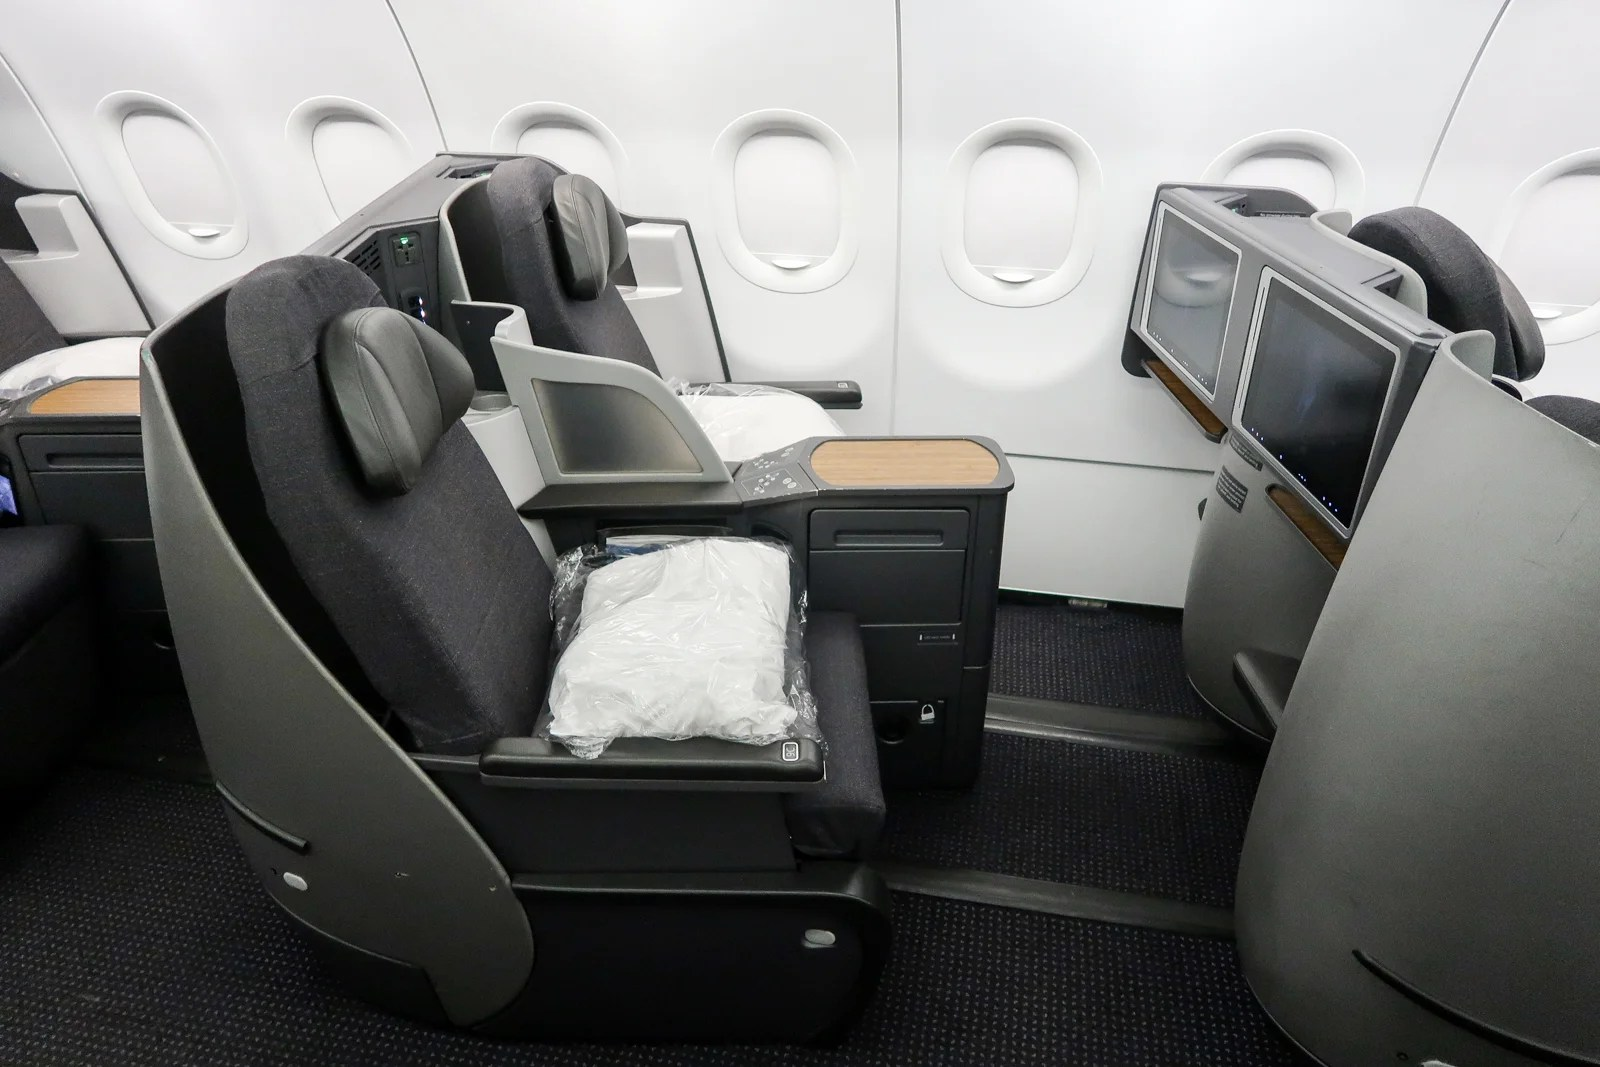 Deal Alert: American Transcon Flagship Business Class for 25,000 Miles One-Way